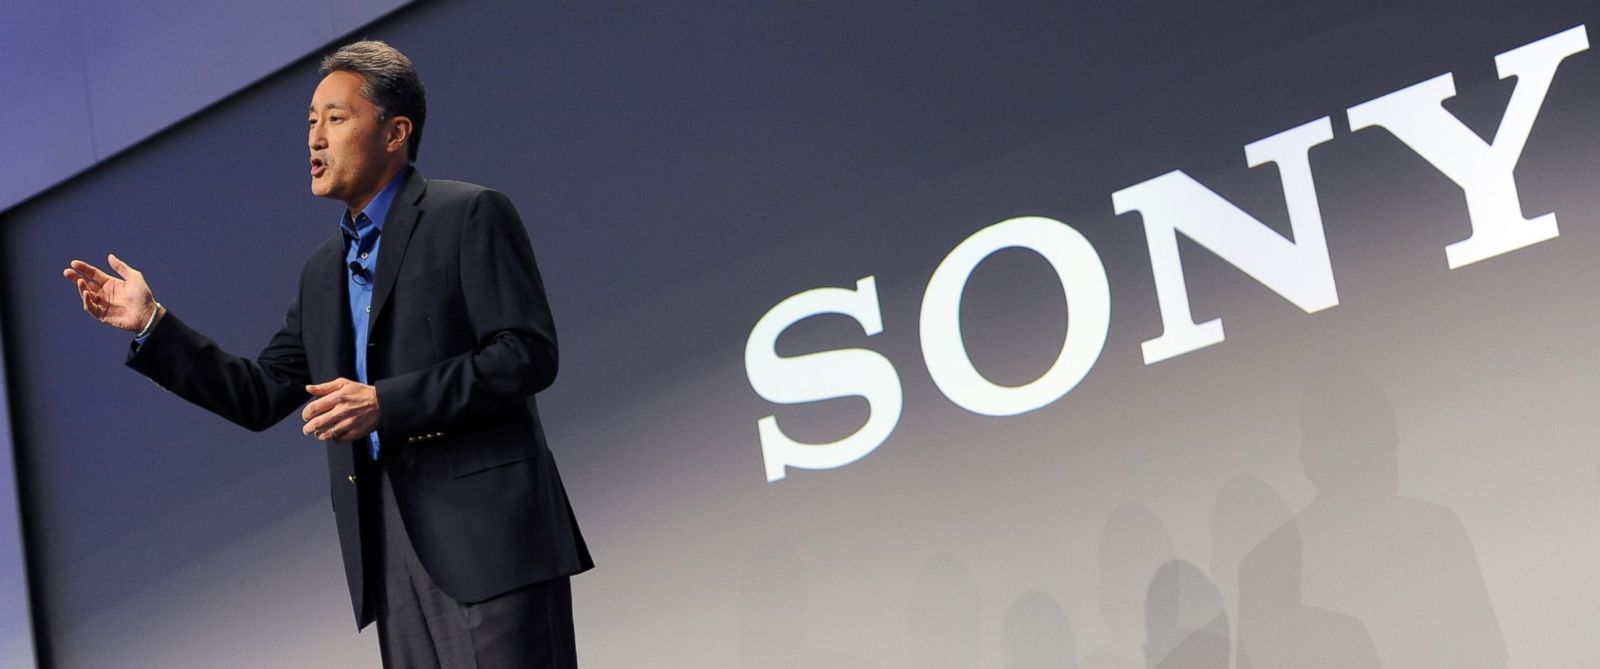 PHOTO: General manager of Sony, Kazuo Hirai, speaks at a Sony press conference in Las Vegas on Jan. 6, 2014.